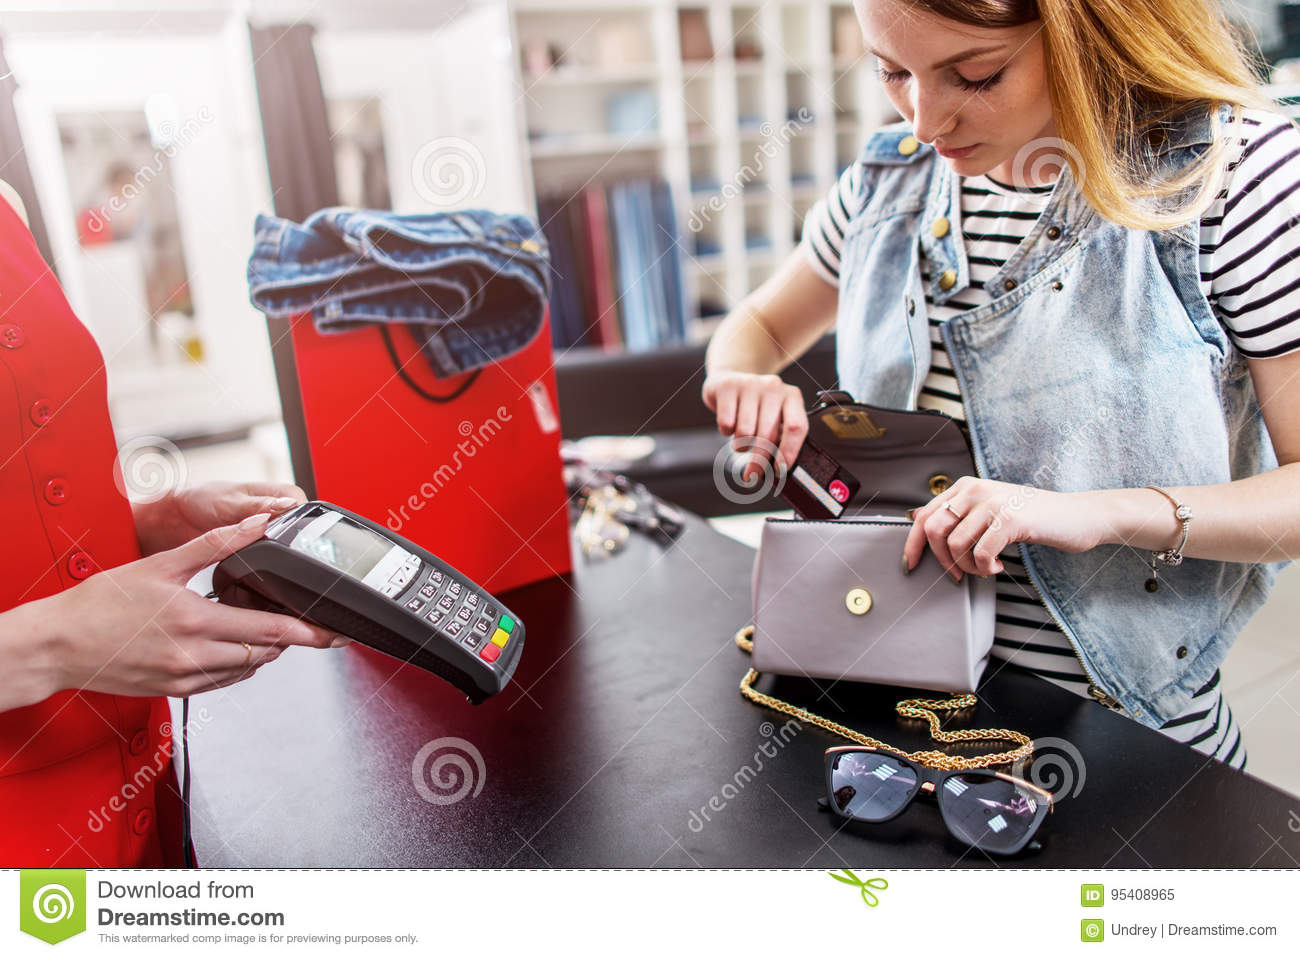 Young female customer standing at cash desk paying with credit card in clothing shop